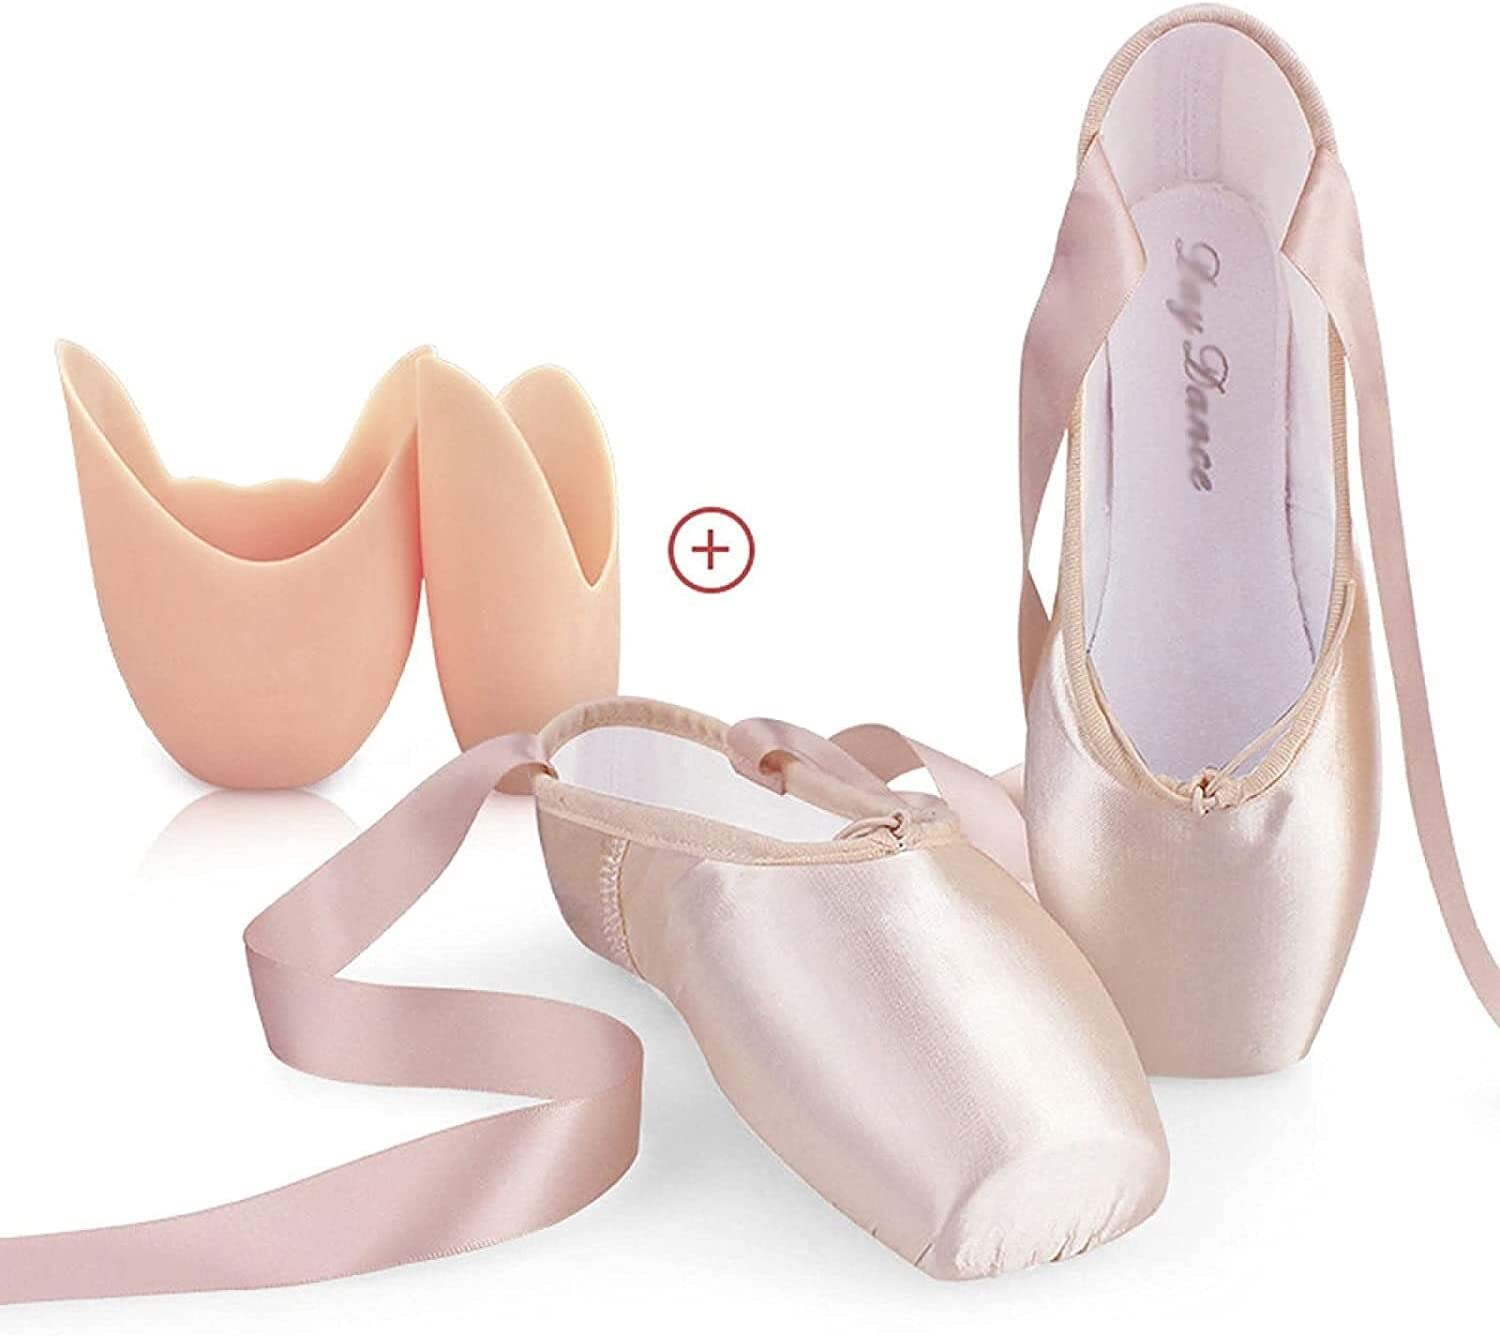 Women Girls Professional Ballet Pointe Shoes, Dance Shoes with Sewed Ribbon and Silicone Toe Pads (Color : Pink Toecaps, Size : 43 EU)